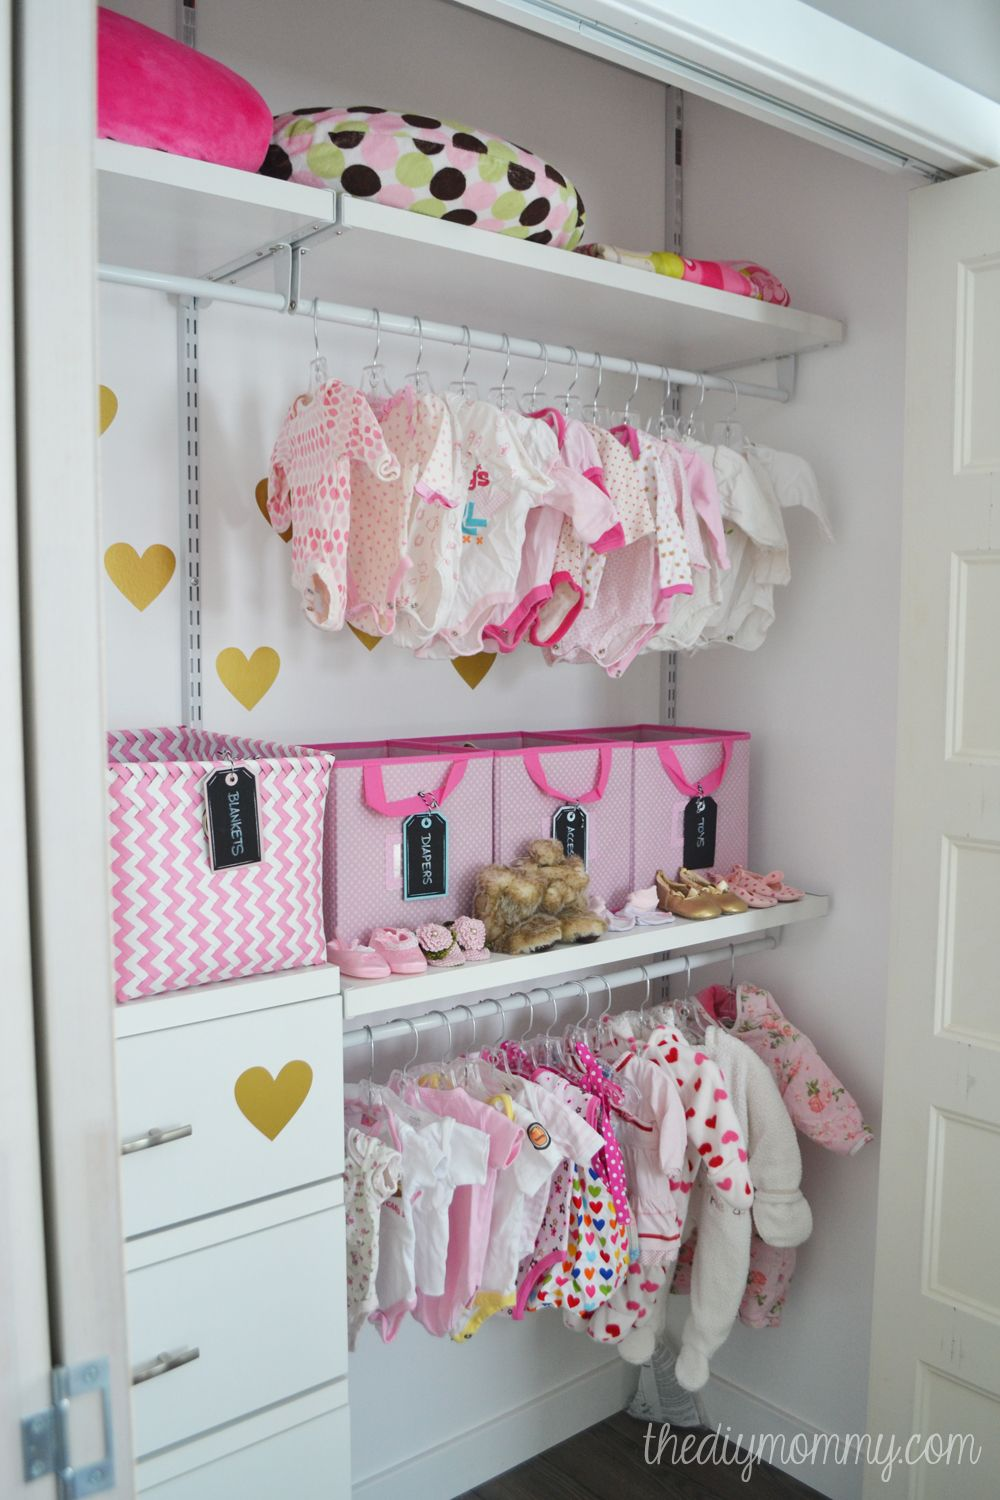 An Organized Baby Closet With The Help Of Closetmaid ShelfTrack Elite Products Found At Lowes Canada What A Neat And Cute Idea